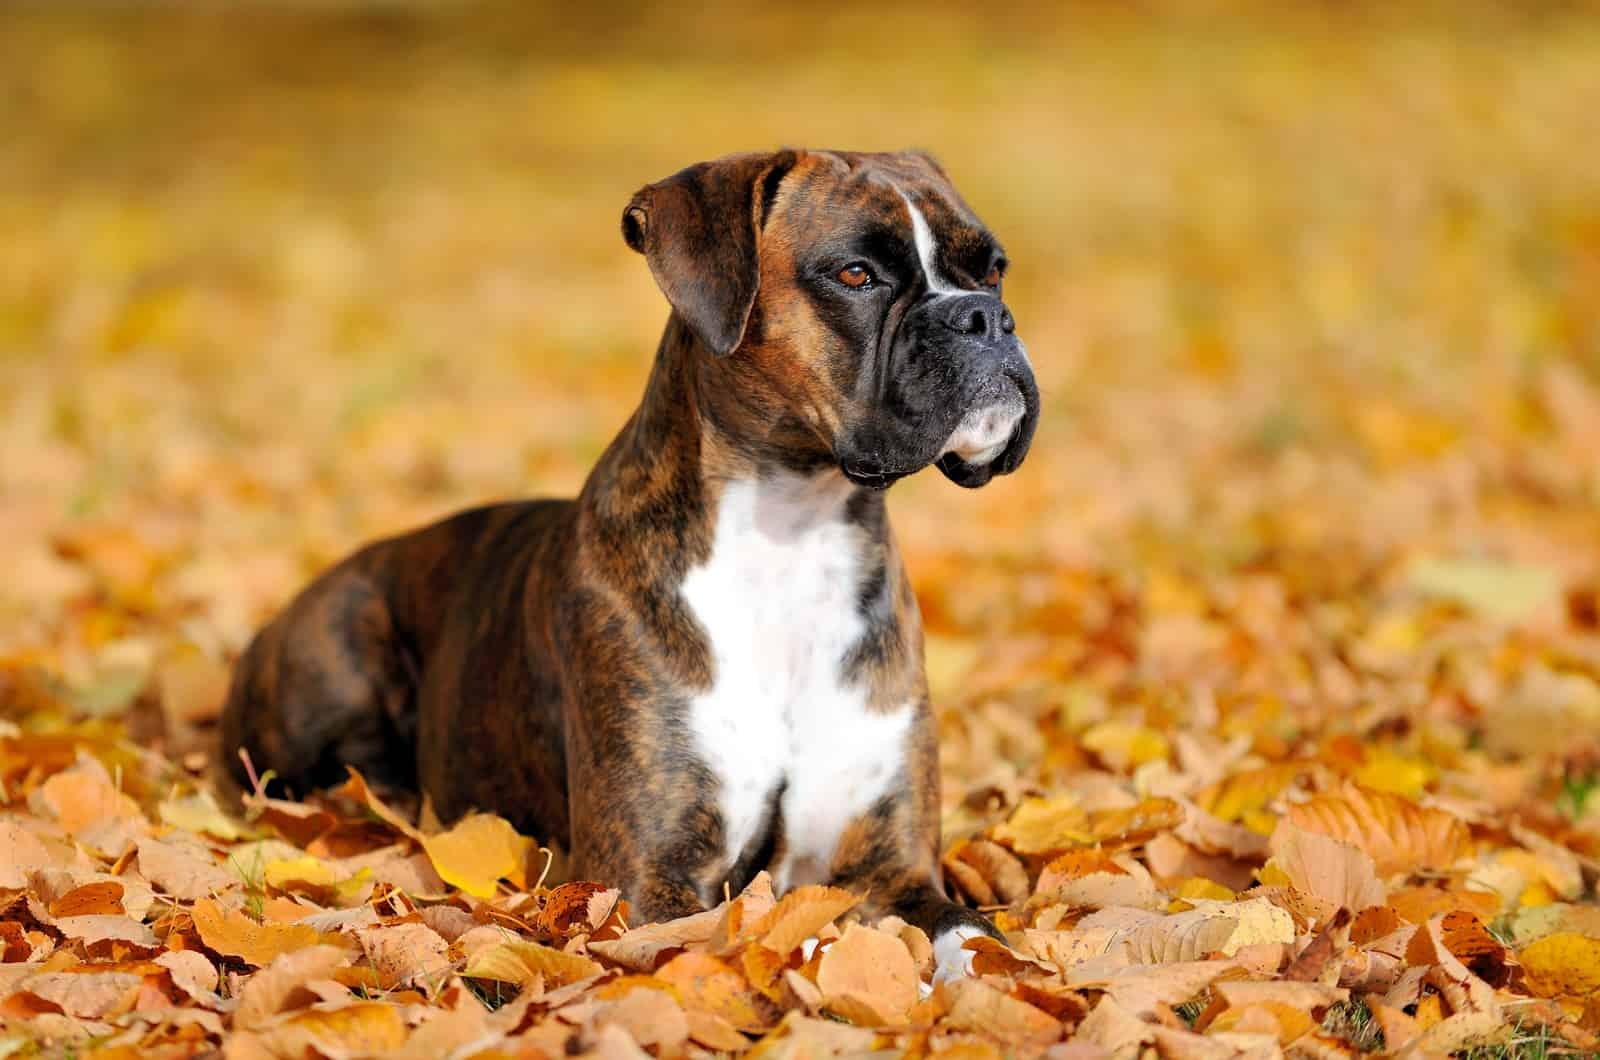 boxer dog lies in leaves